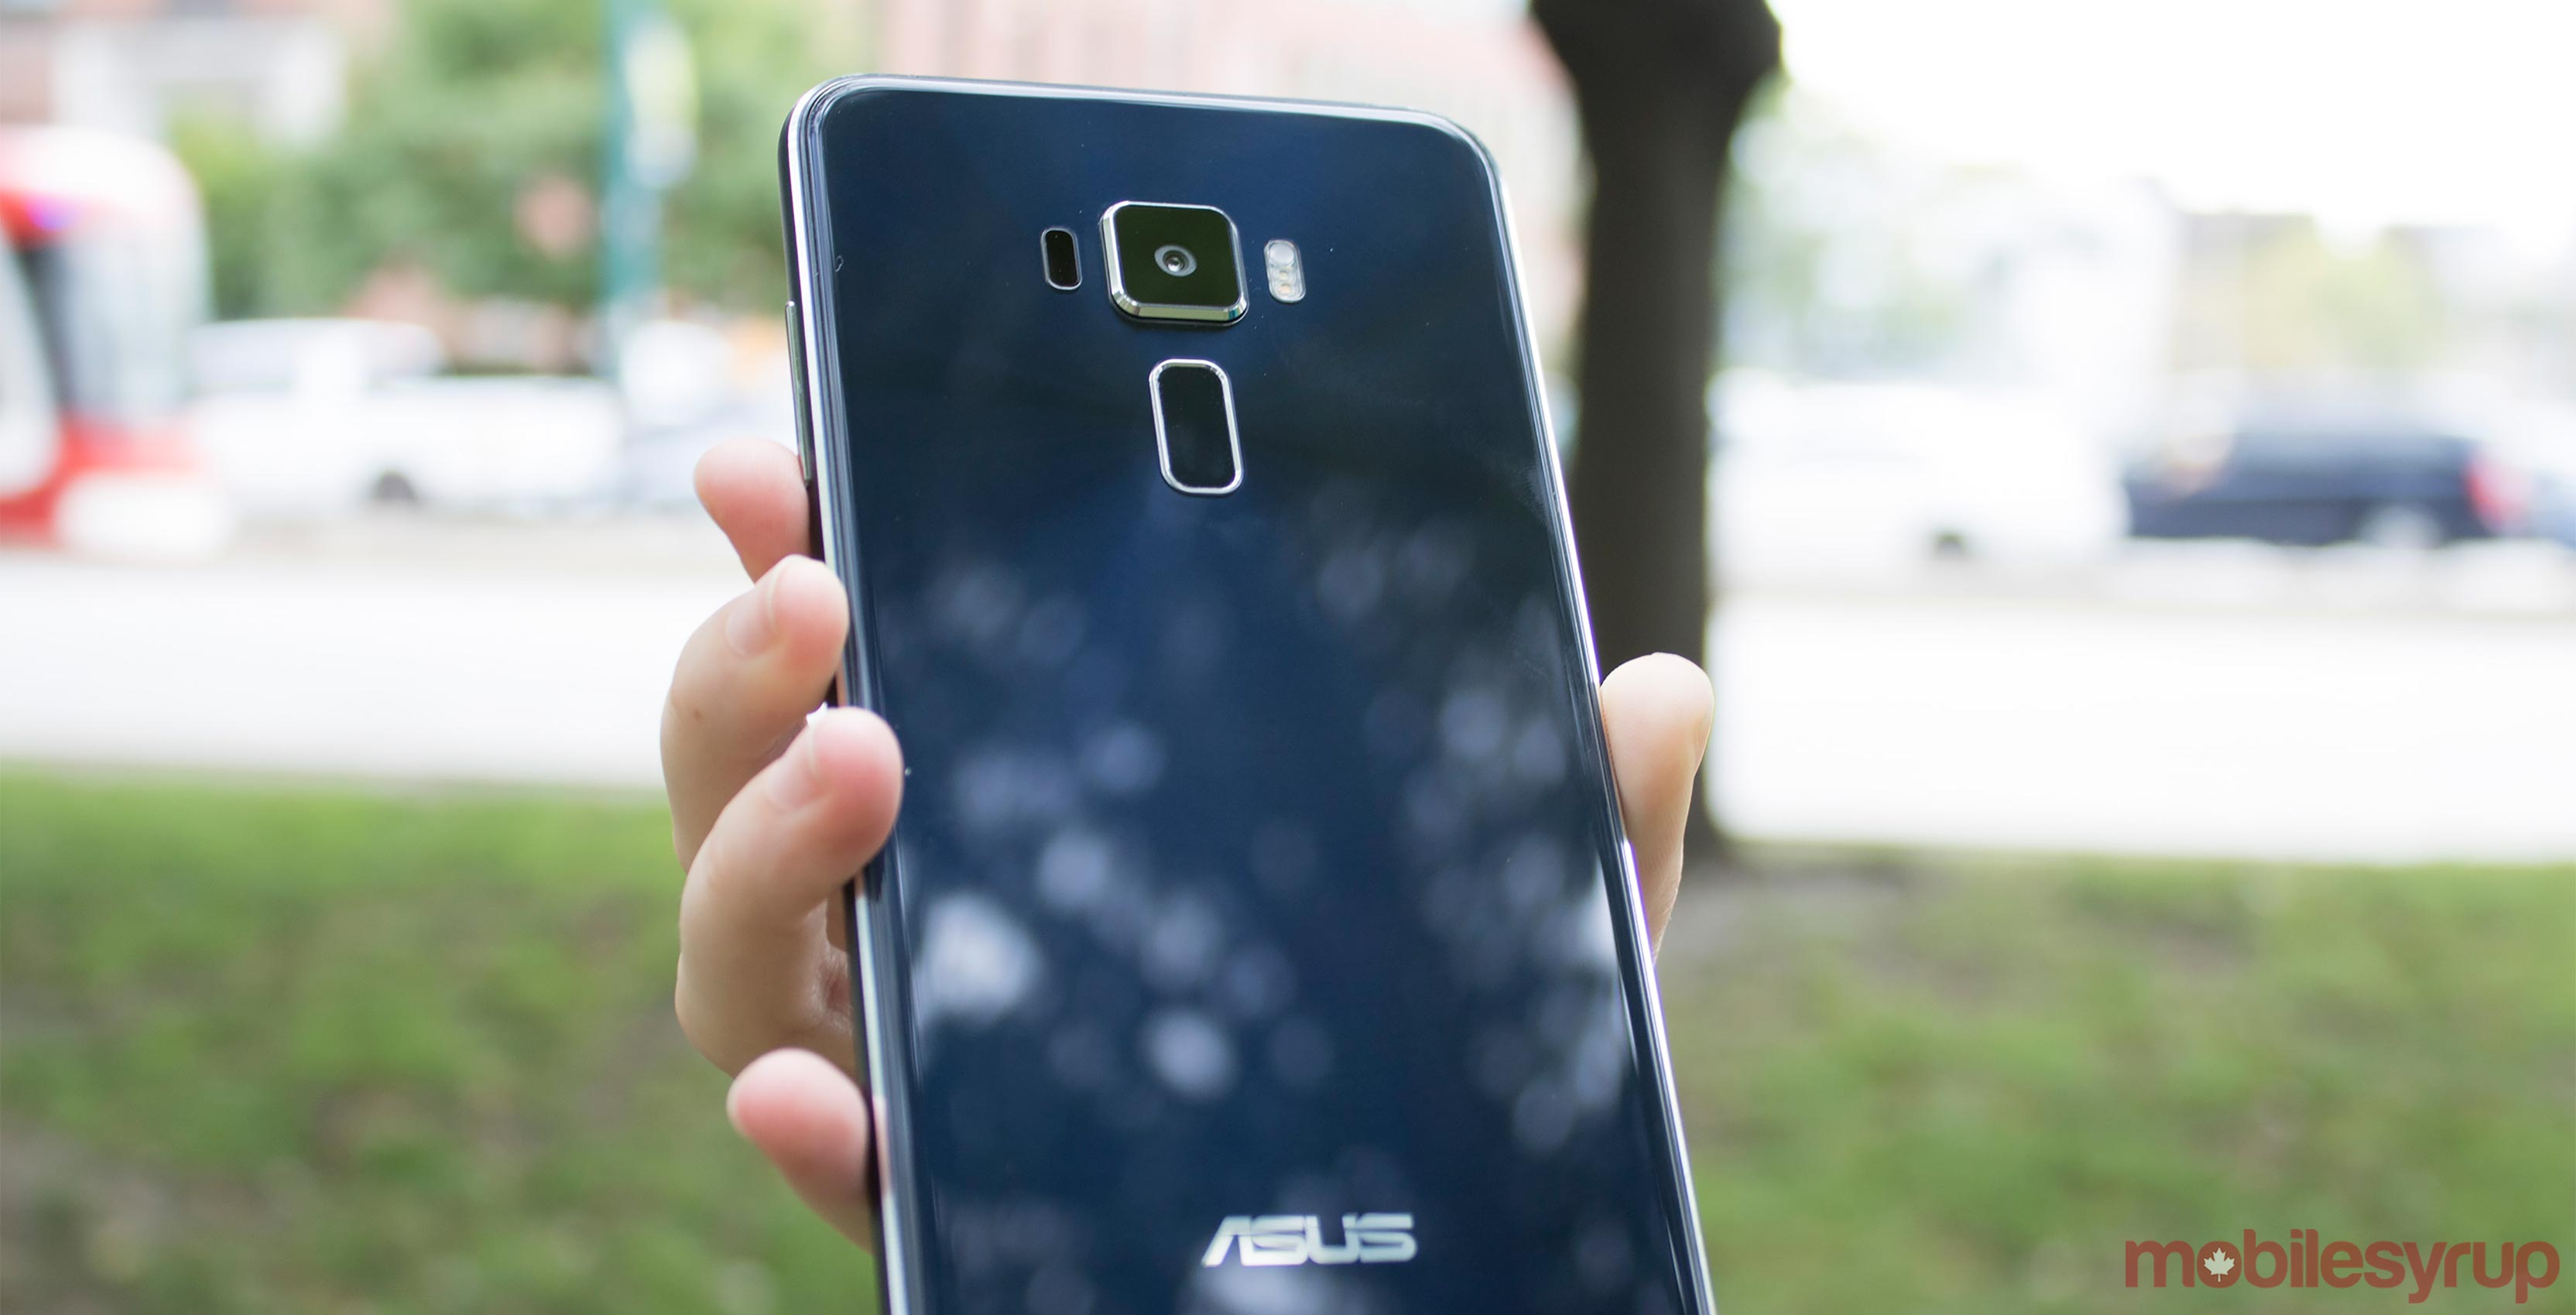 Android Nougat 7 0 update now rolling out to Asus ZenFone 3